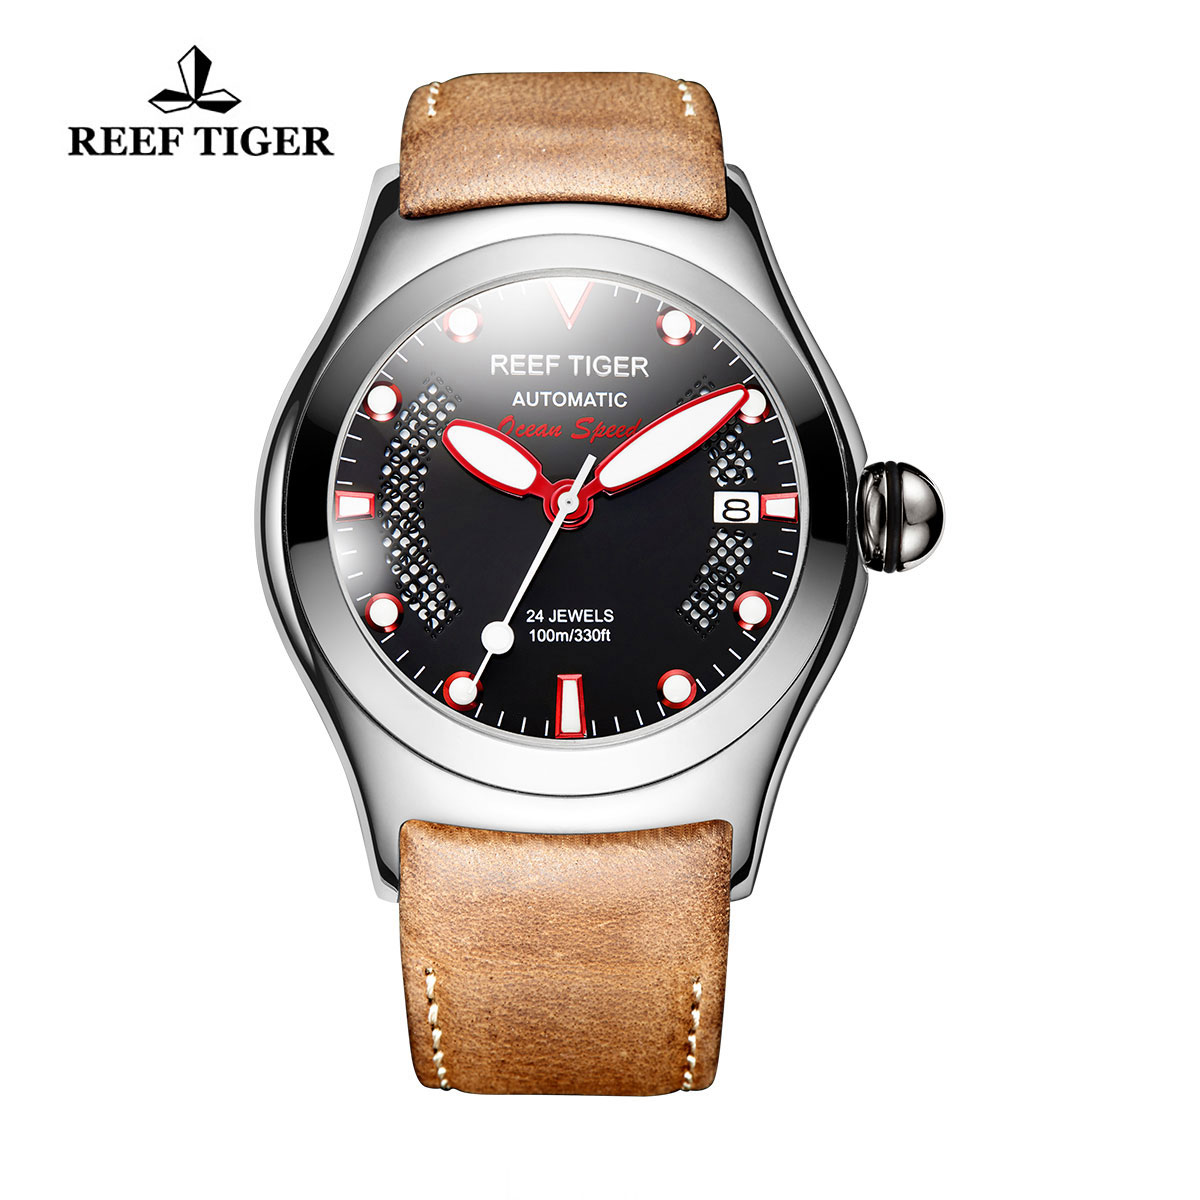 Reef Tiger Ocean Speed Sport Watches Automatic Steel Case Leather Strap Black Dial Watch RGA704-YBBR